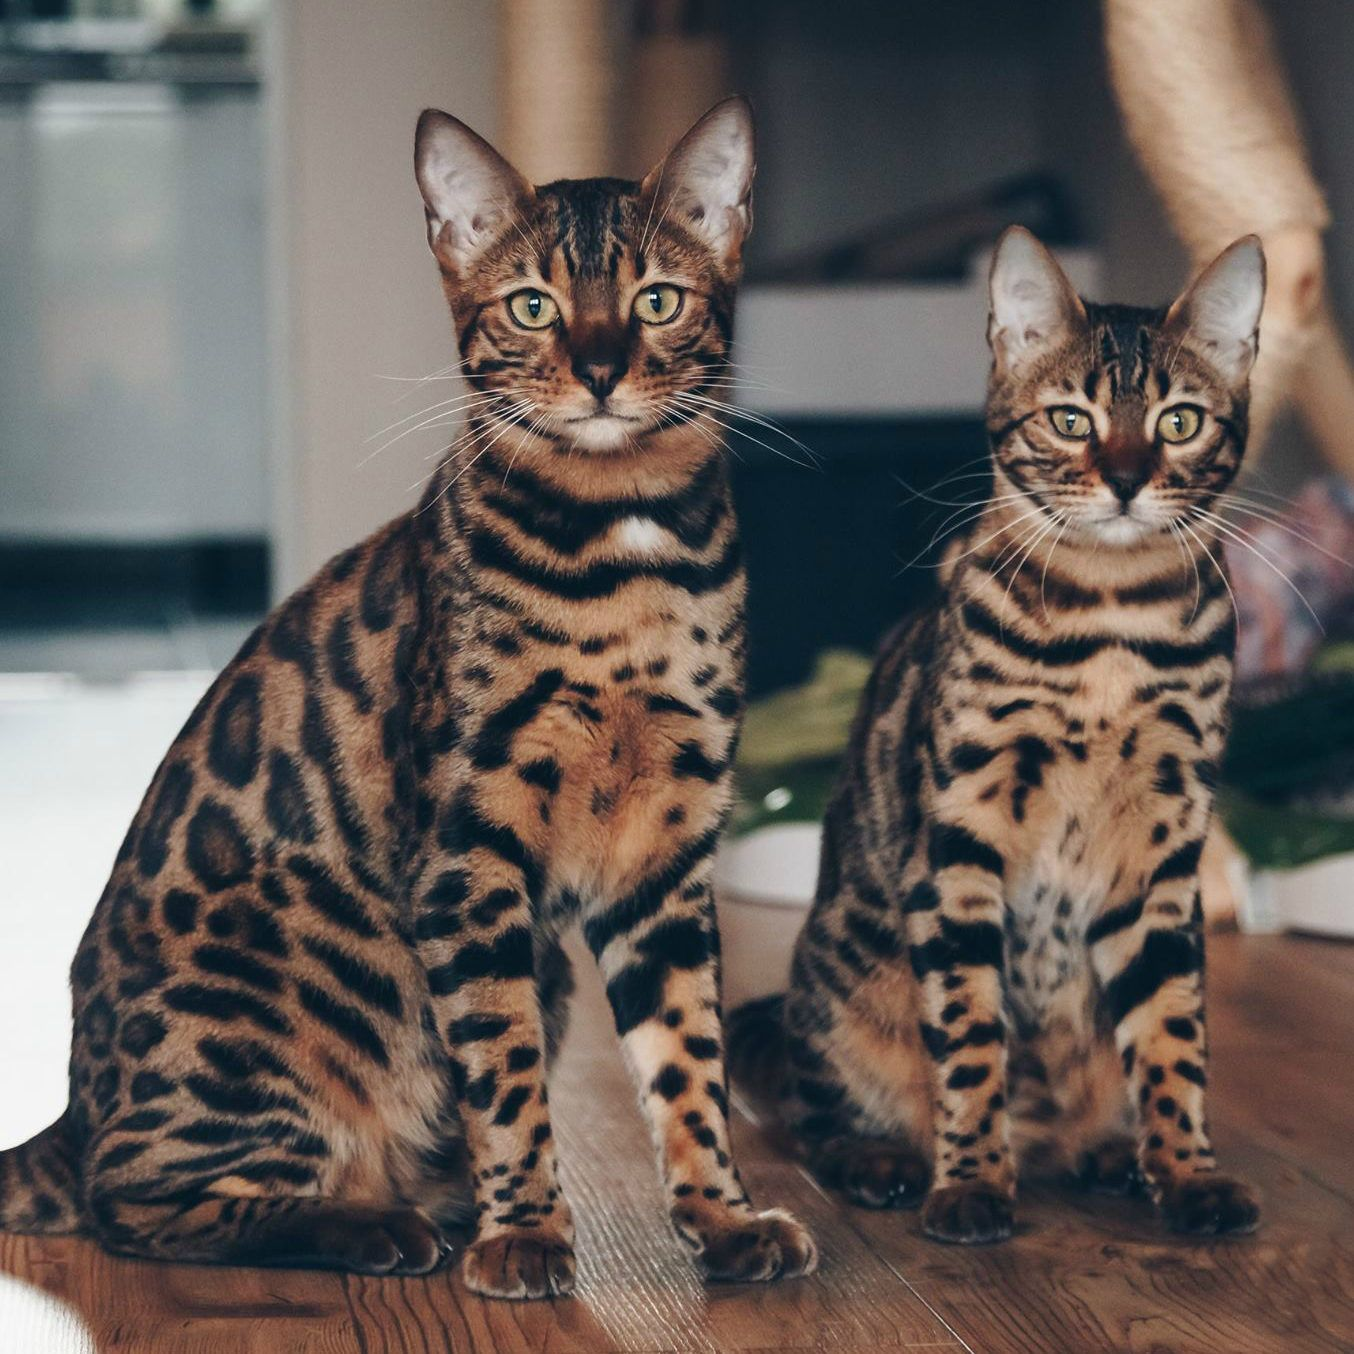 Whoa! Are these house cats or wild cats? Bengal cat